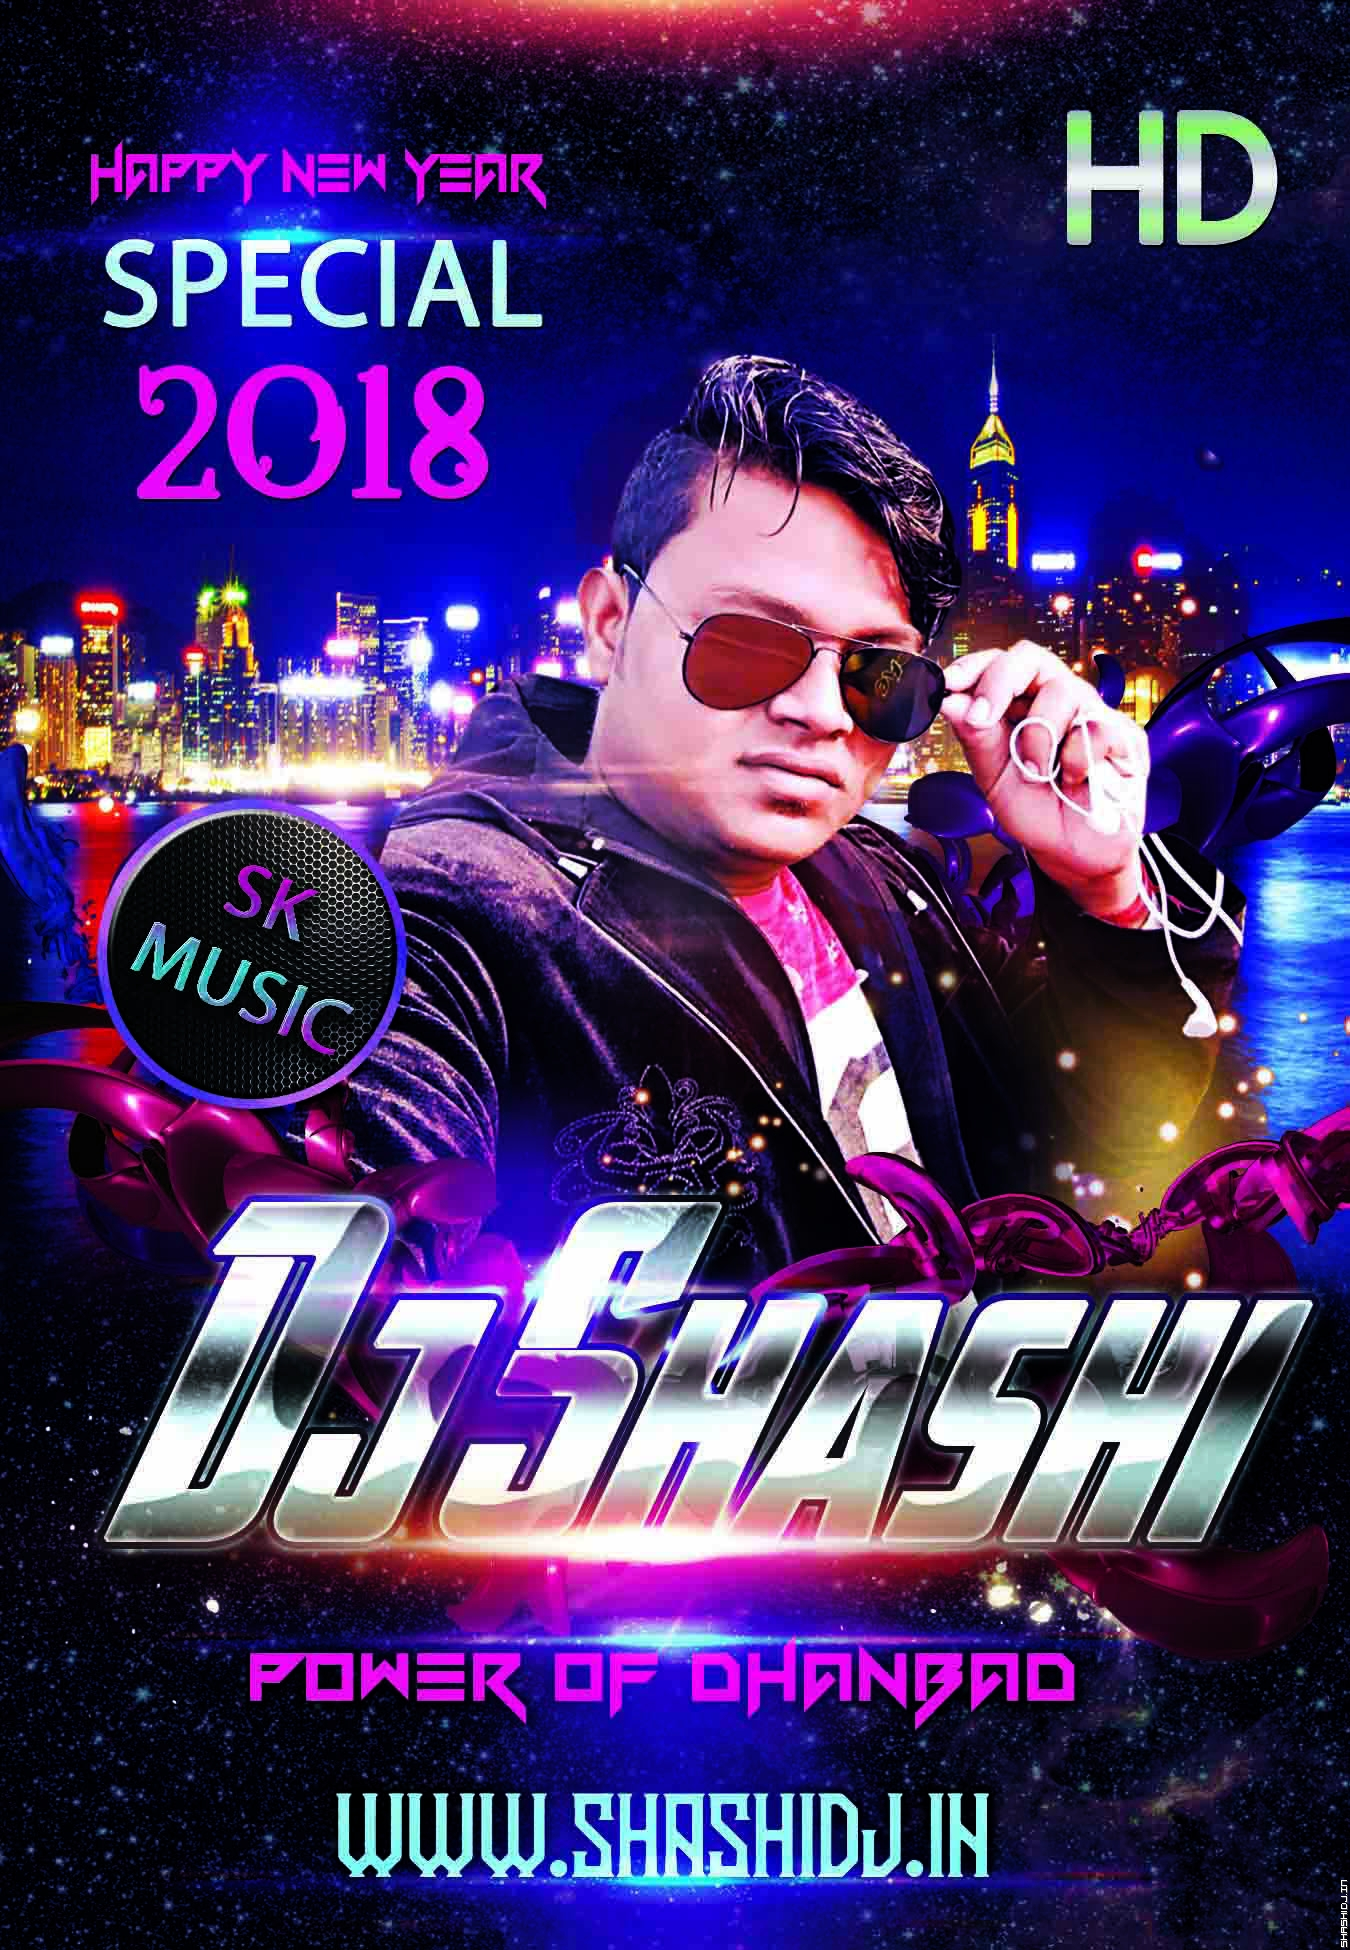 Tujhe Bewafa Kahun-Khesari Lal--Bdm Club Mix by Dj Shashi.mp3